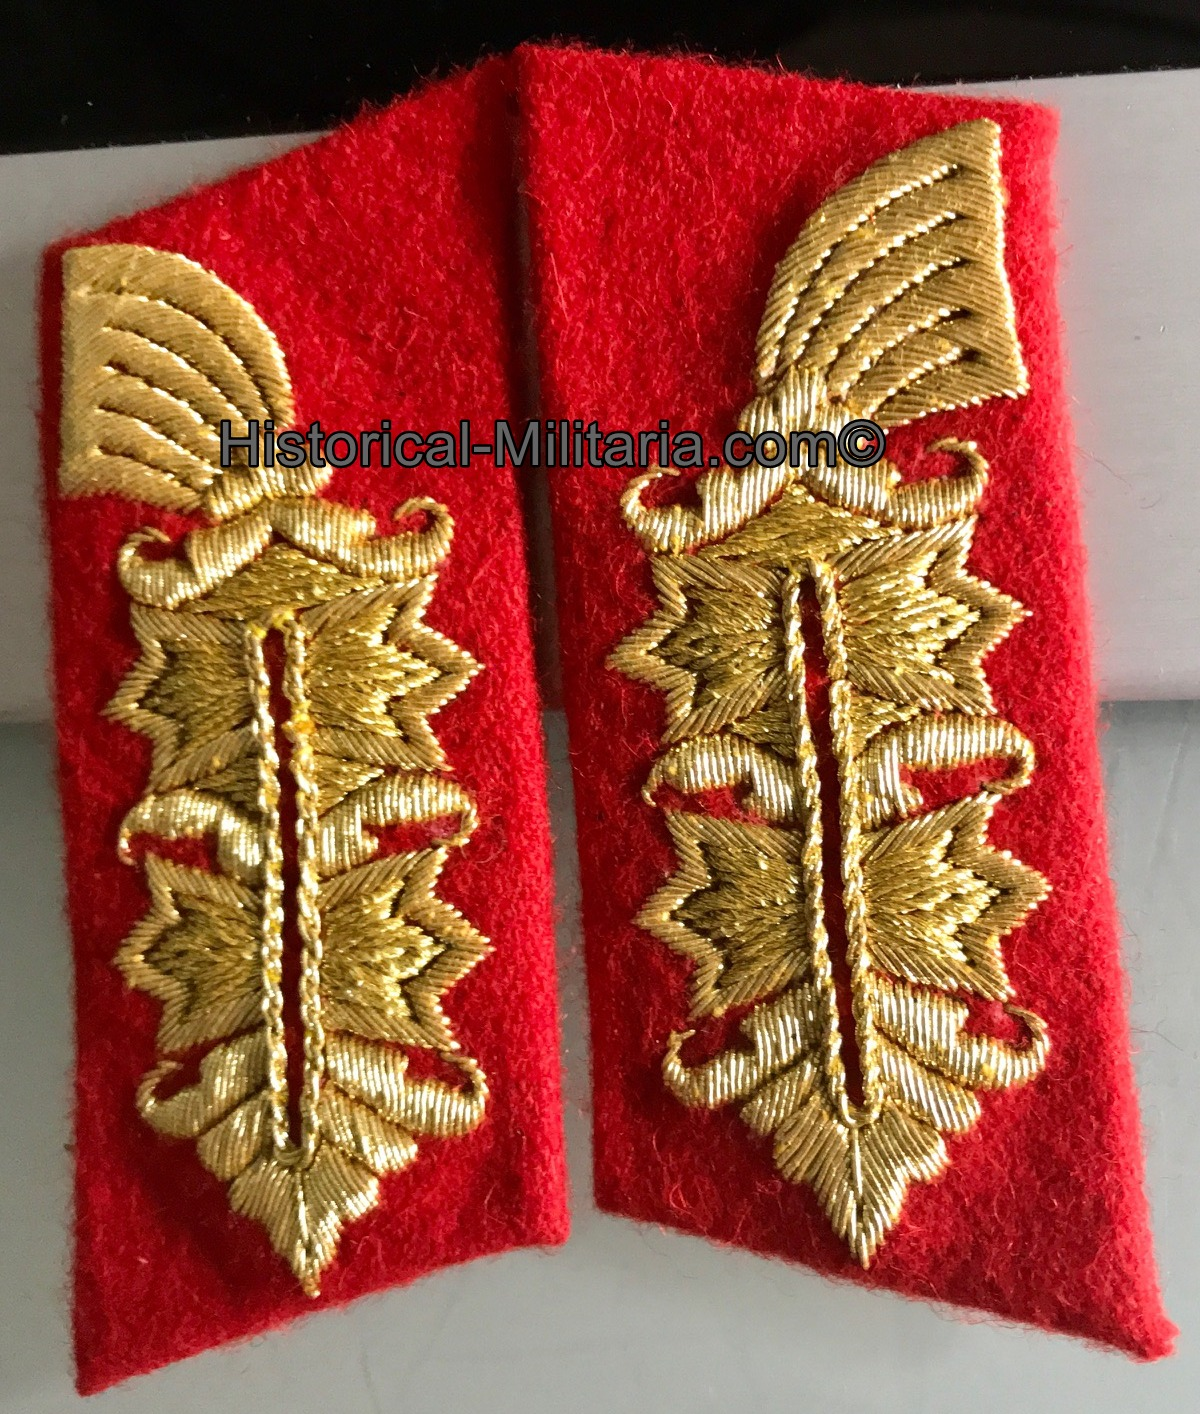 GENERAL Wehrmacht Schulterklappen Set +Kragenspiegel - German Army Lieutenant General shoulder board set +collar tabs - Set spalline e mostrine da Generale dell'esercito tedesco heer